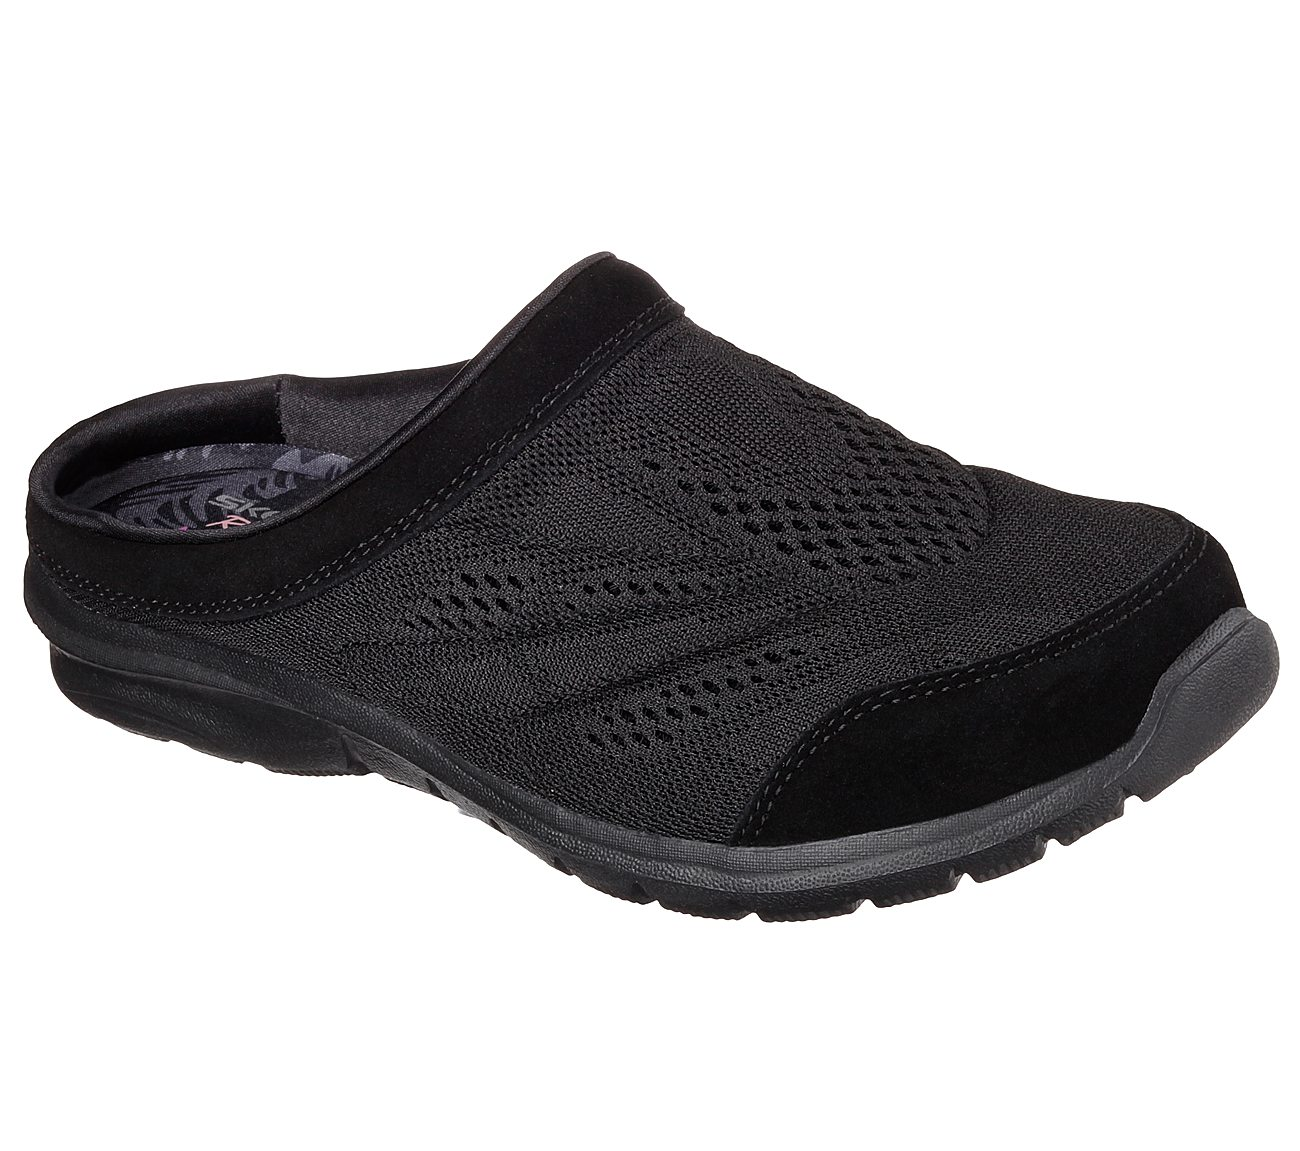 Relaxed Fit®: Relaxed Living - Serenity SKECHERS 7JTacox